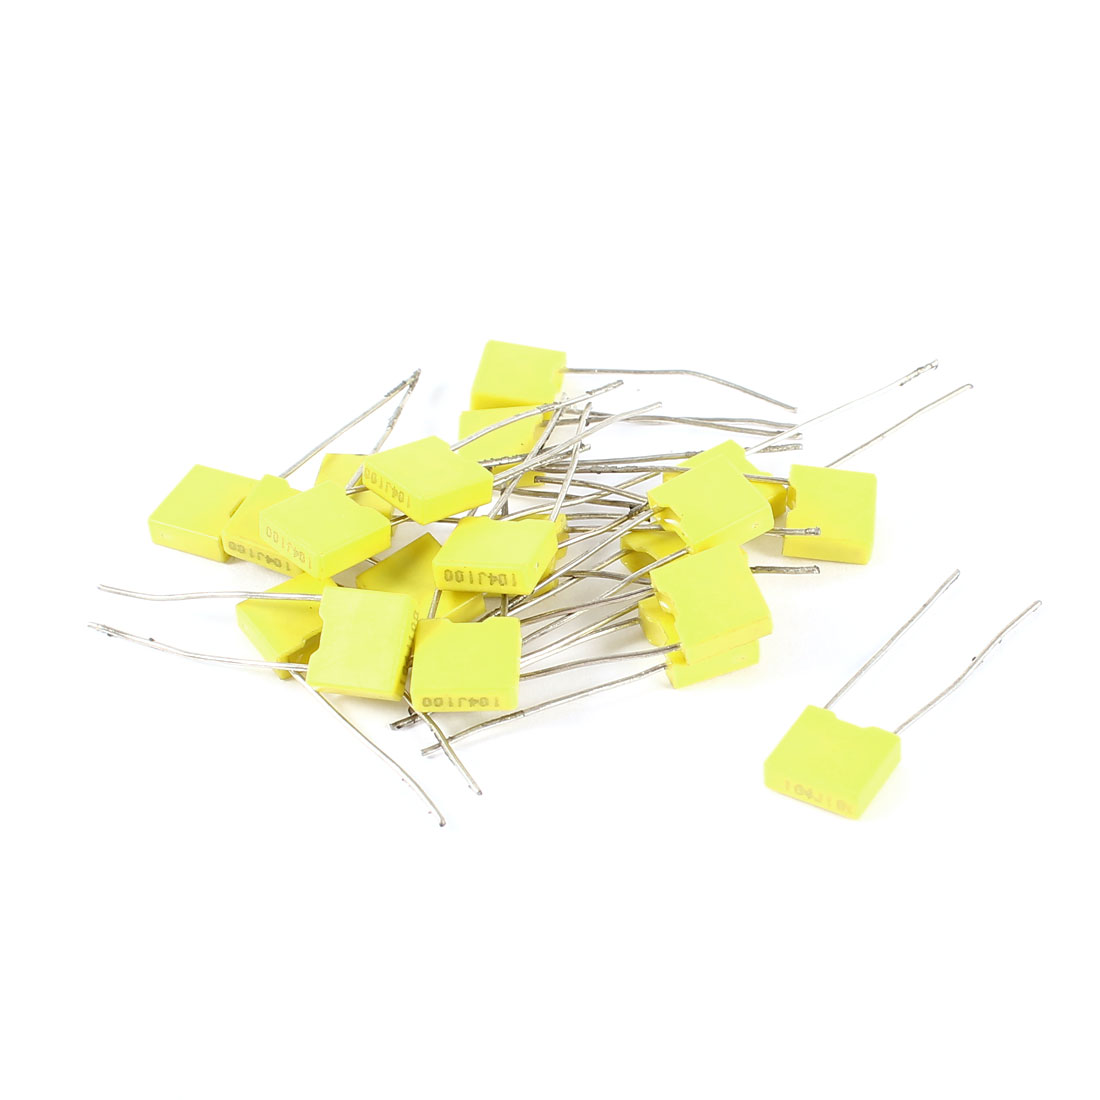 20 Pieces 100V 0.1uF 100NF 10% Radial Lead Box Type Correction Capacitors Yellow